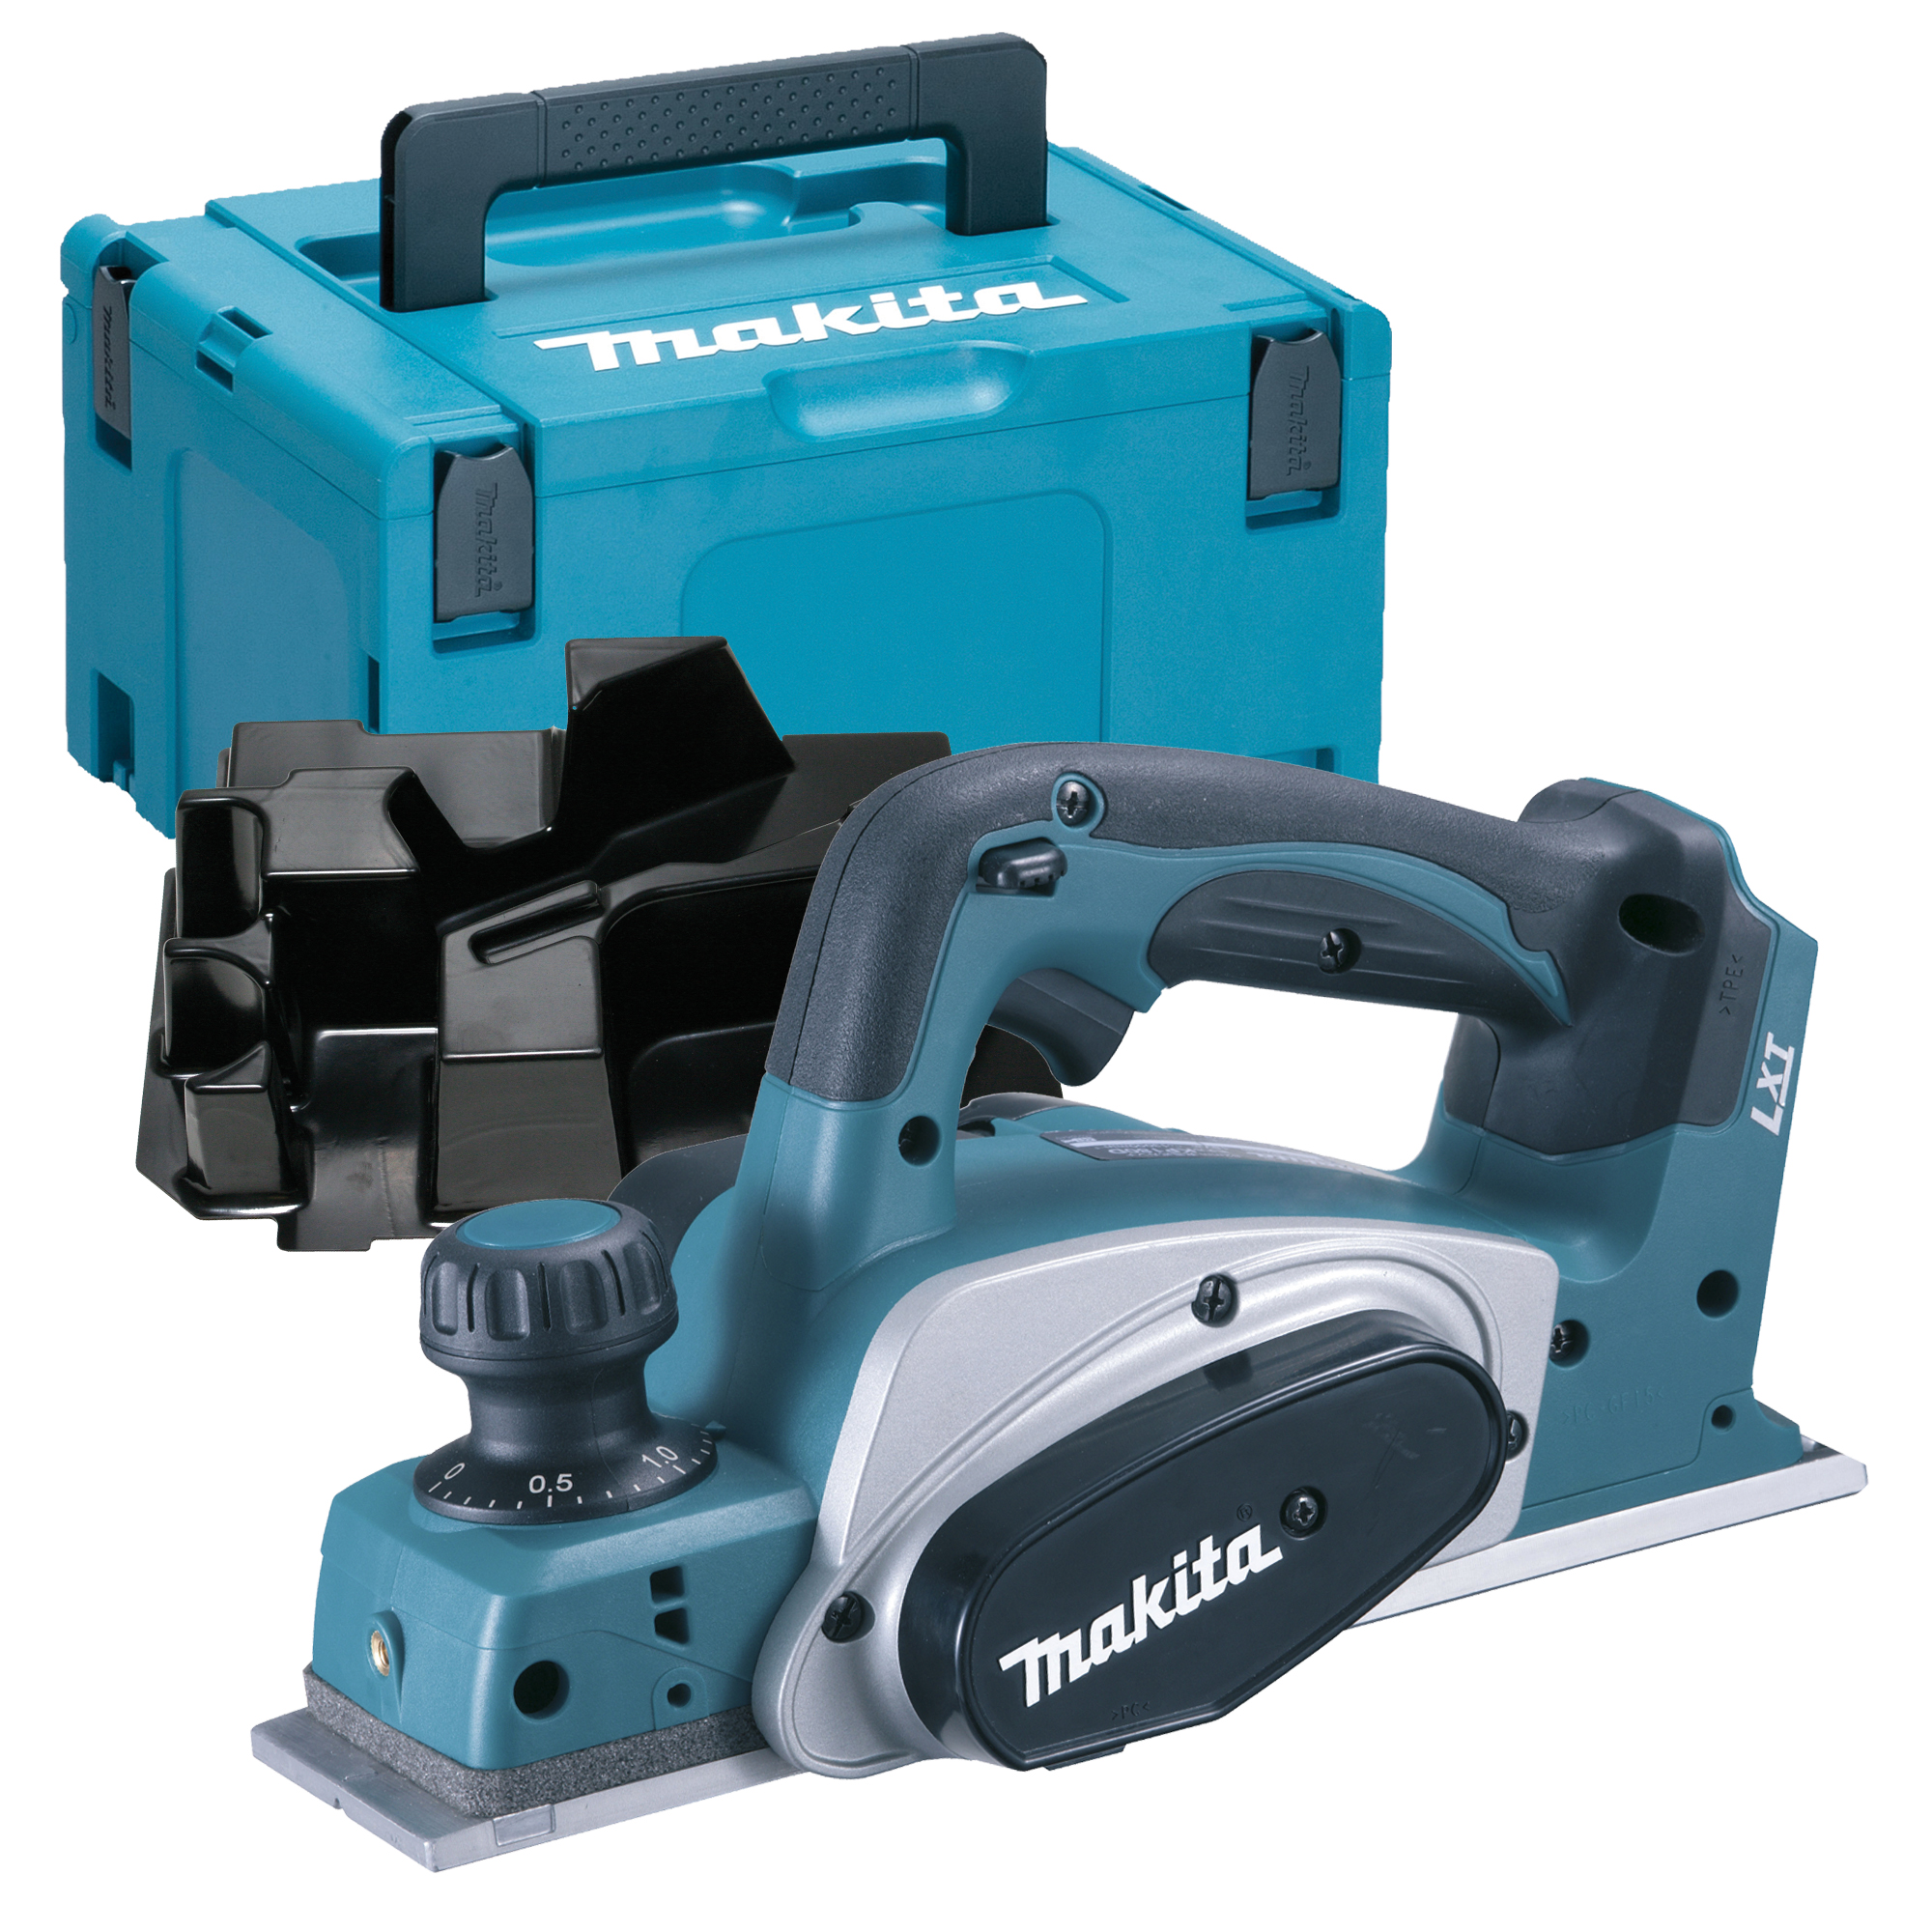 Makita curved planer armored cable junction box